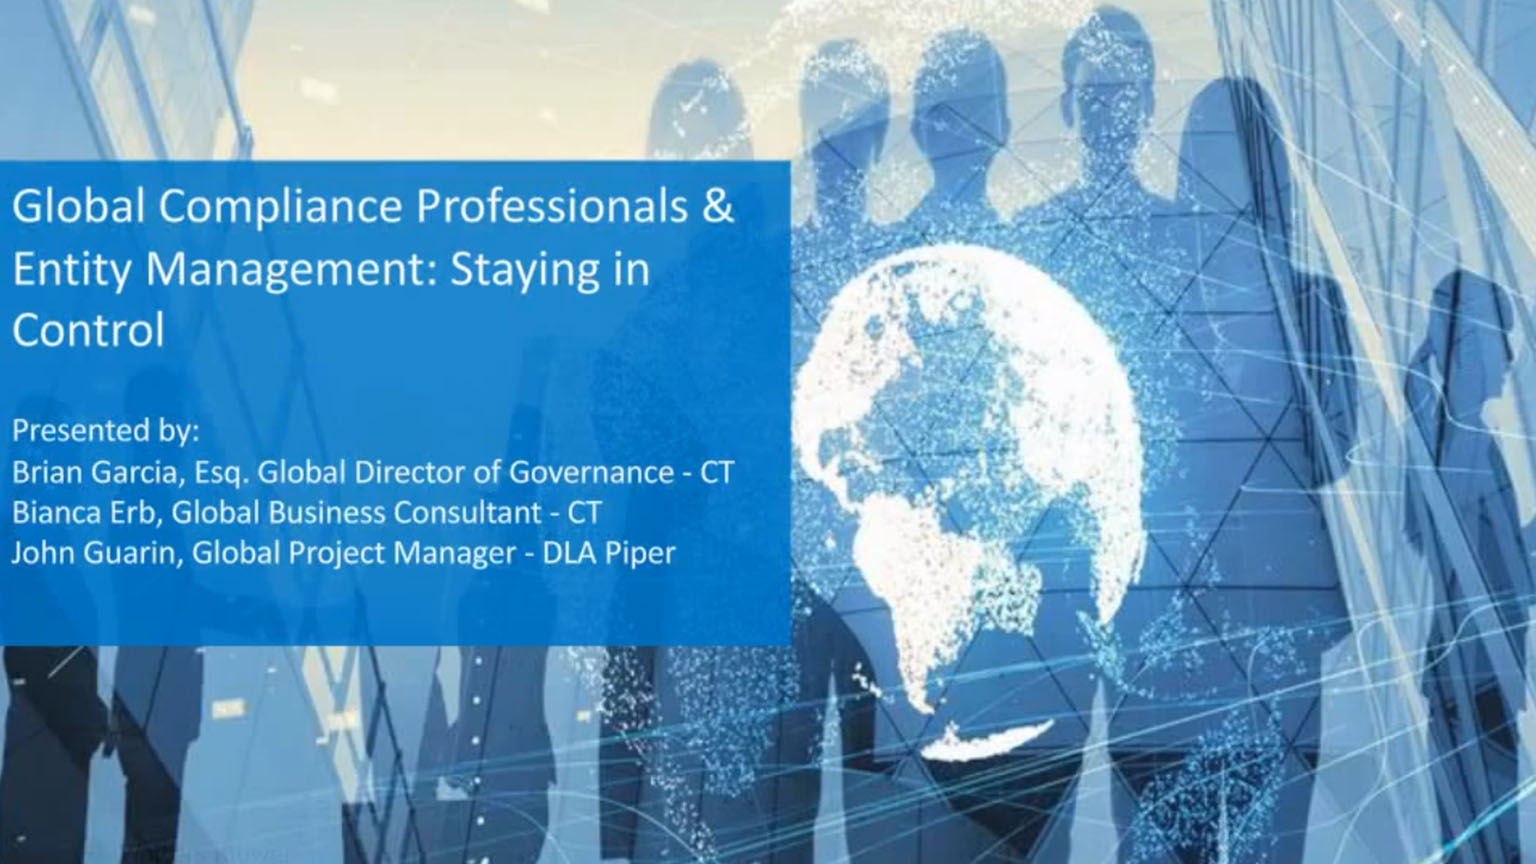 Global Compliance Professionals & Entity Management-Staying in Control